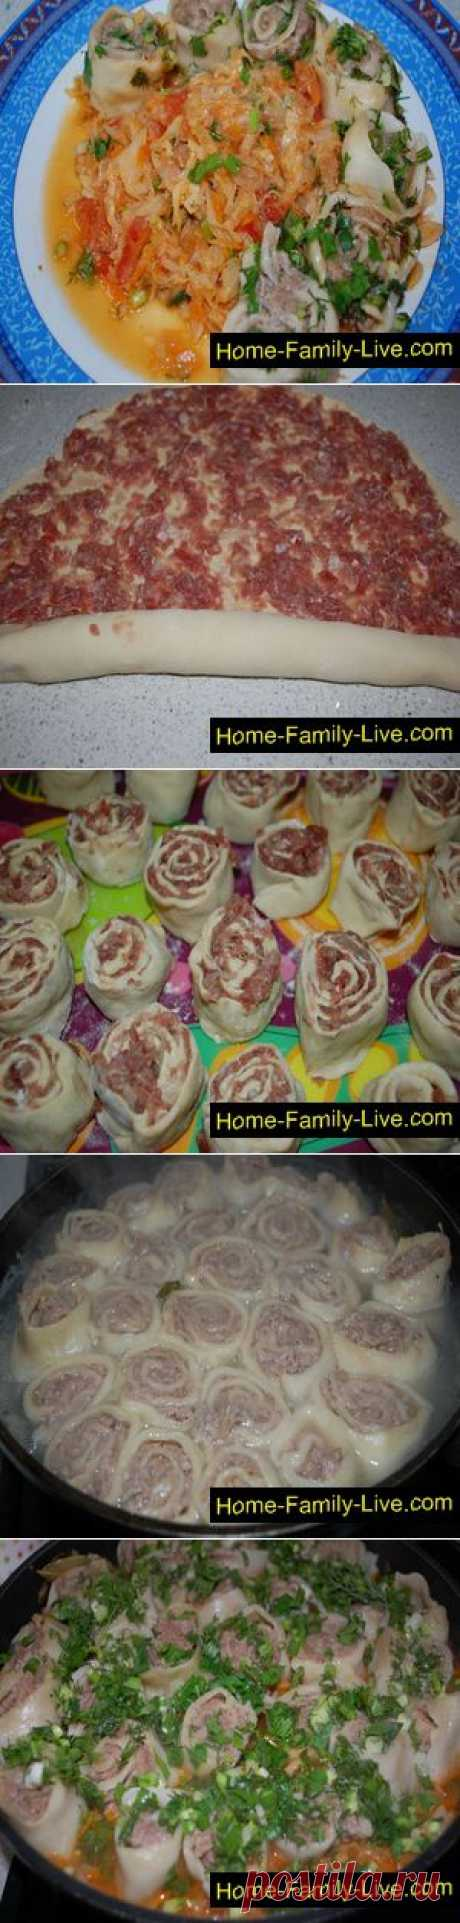 Meat rosettes with cabbage - Culinary recipes